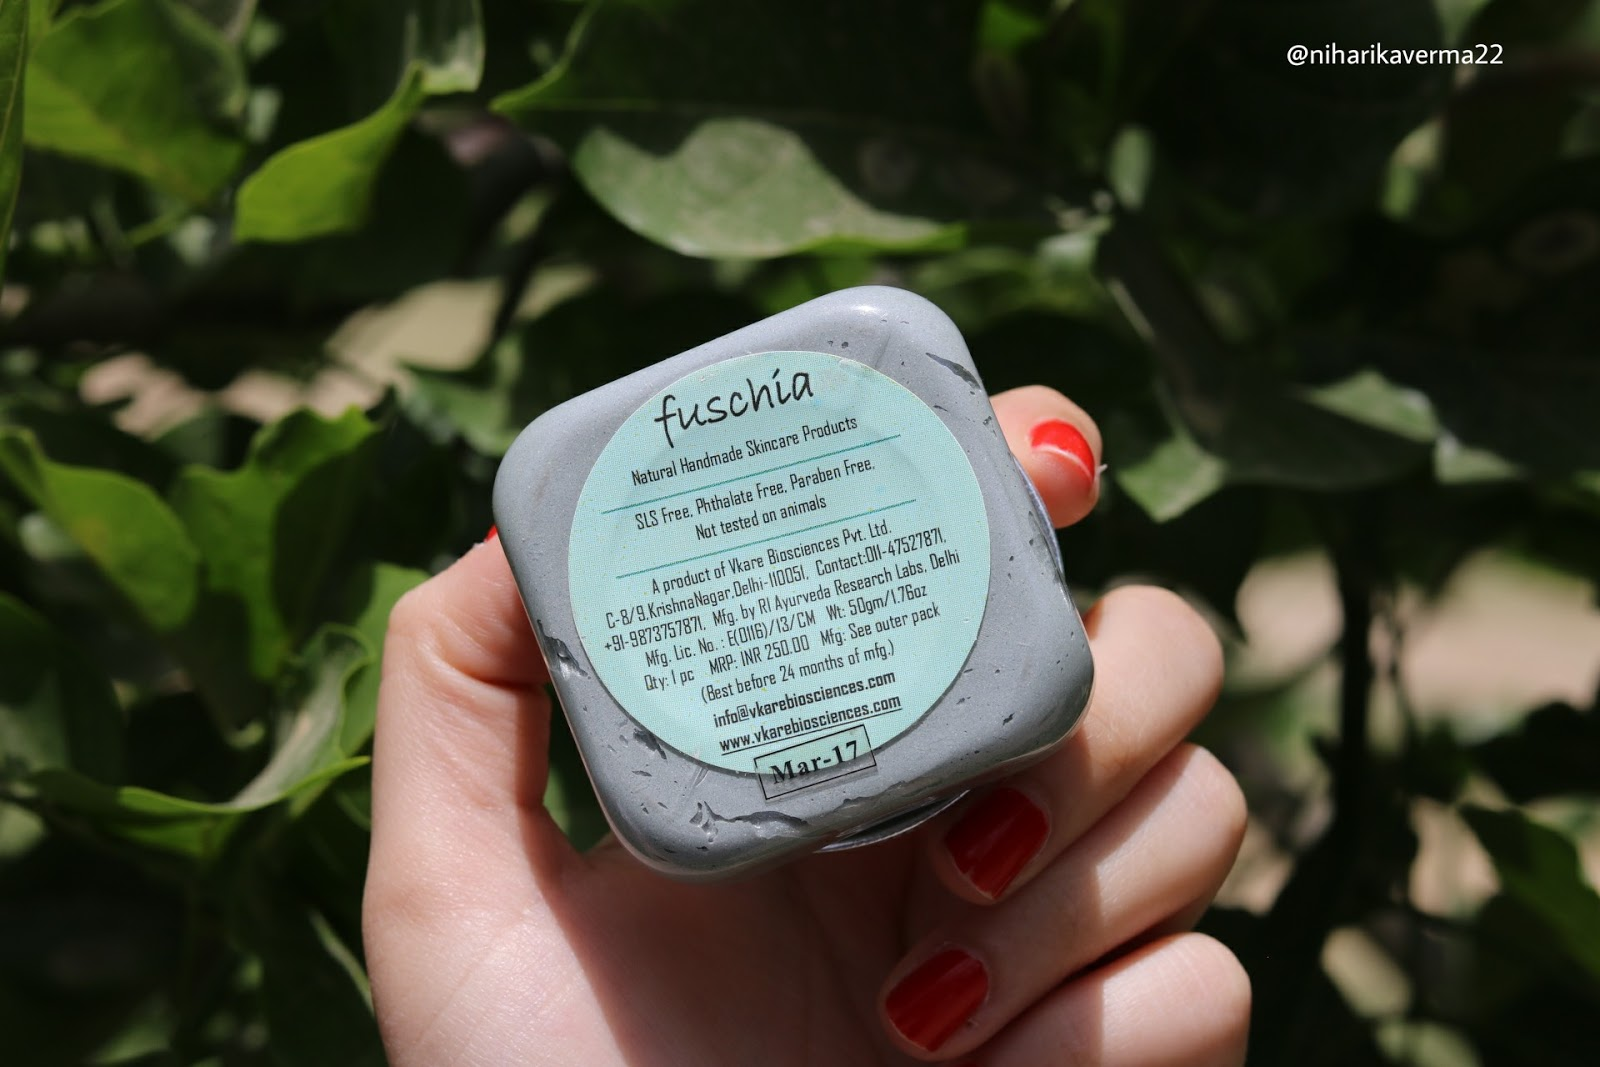 The Pink Velvet Blog - Fuschia Detox Face Mask Review